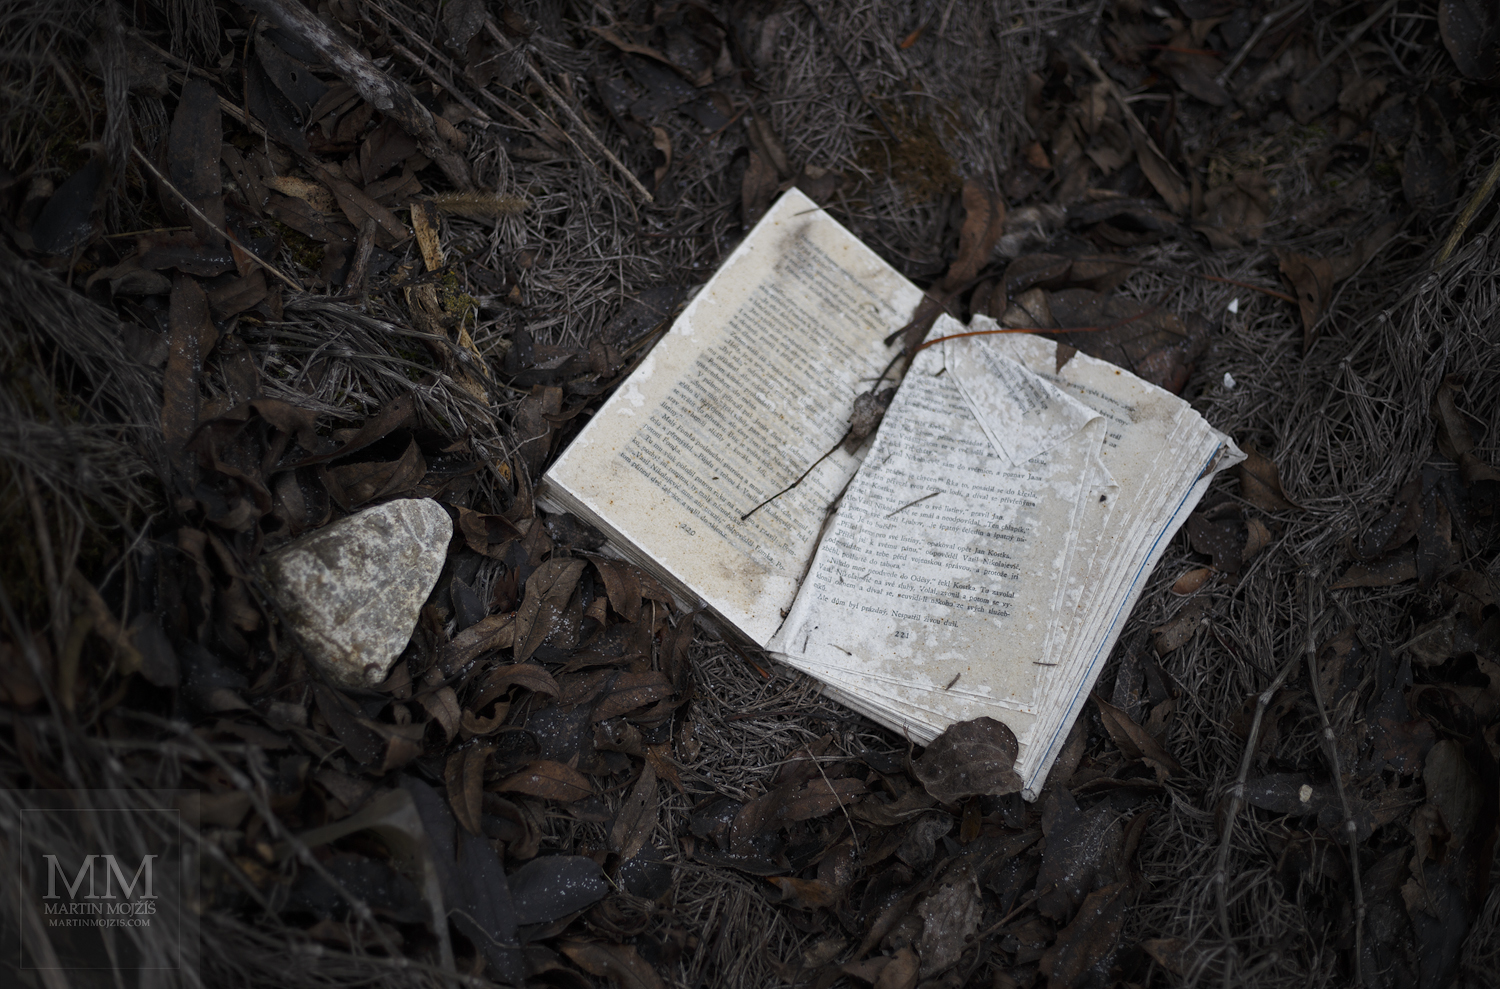 Large format, fine art photograph of book in autumn leaves. Martin Mojzis.